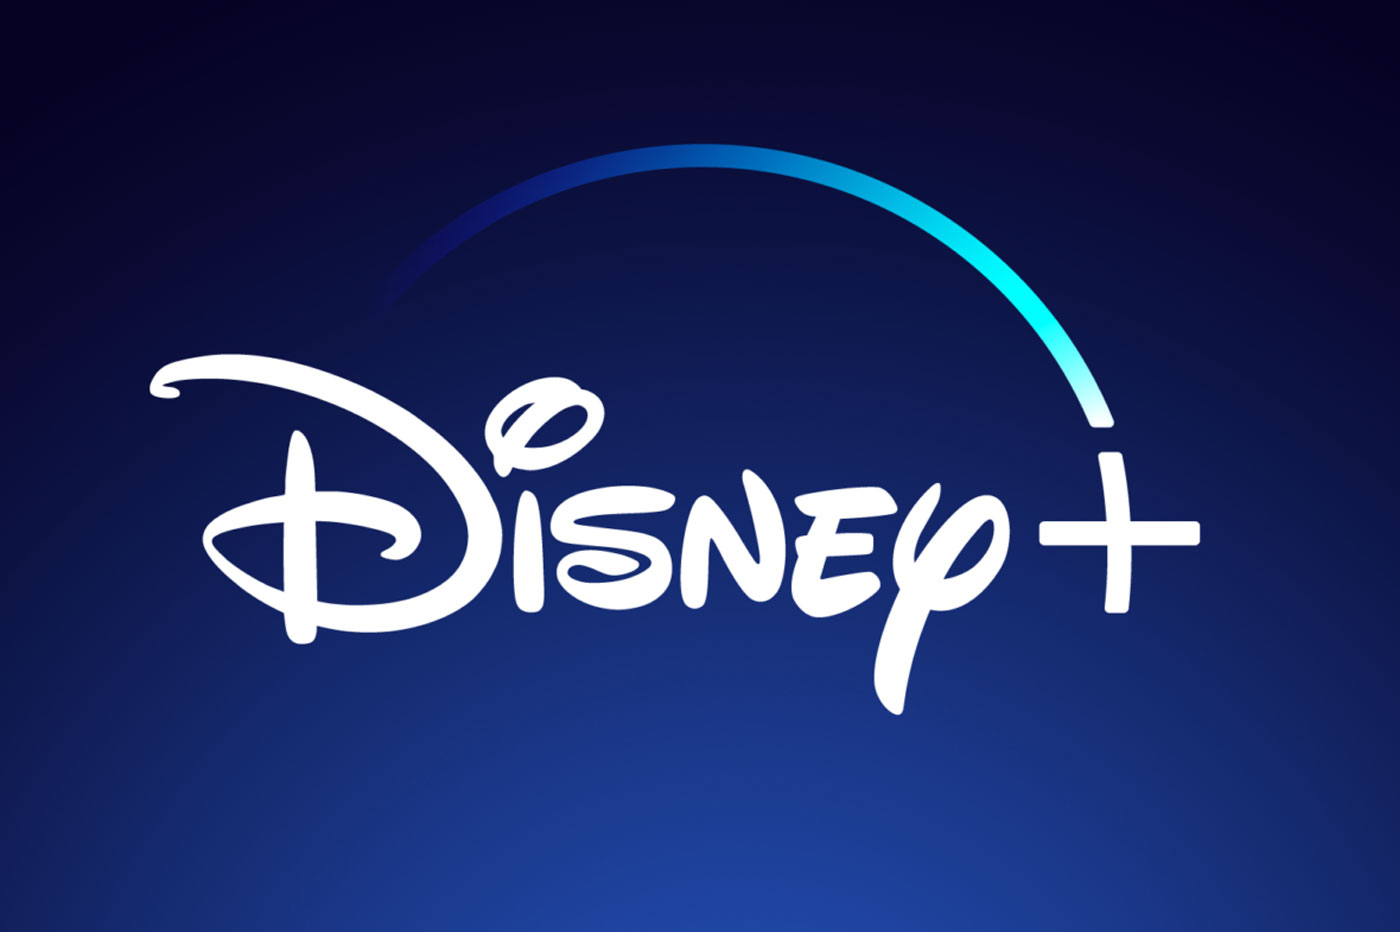 Disney Un Catalogue Riche Complet Avec Films Et Series